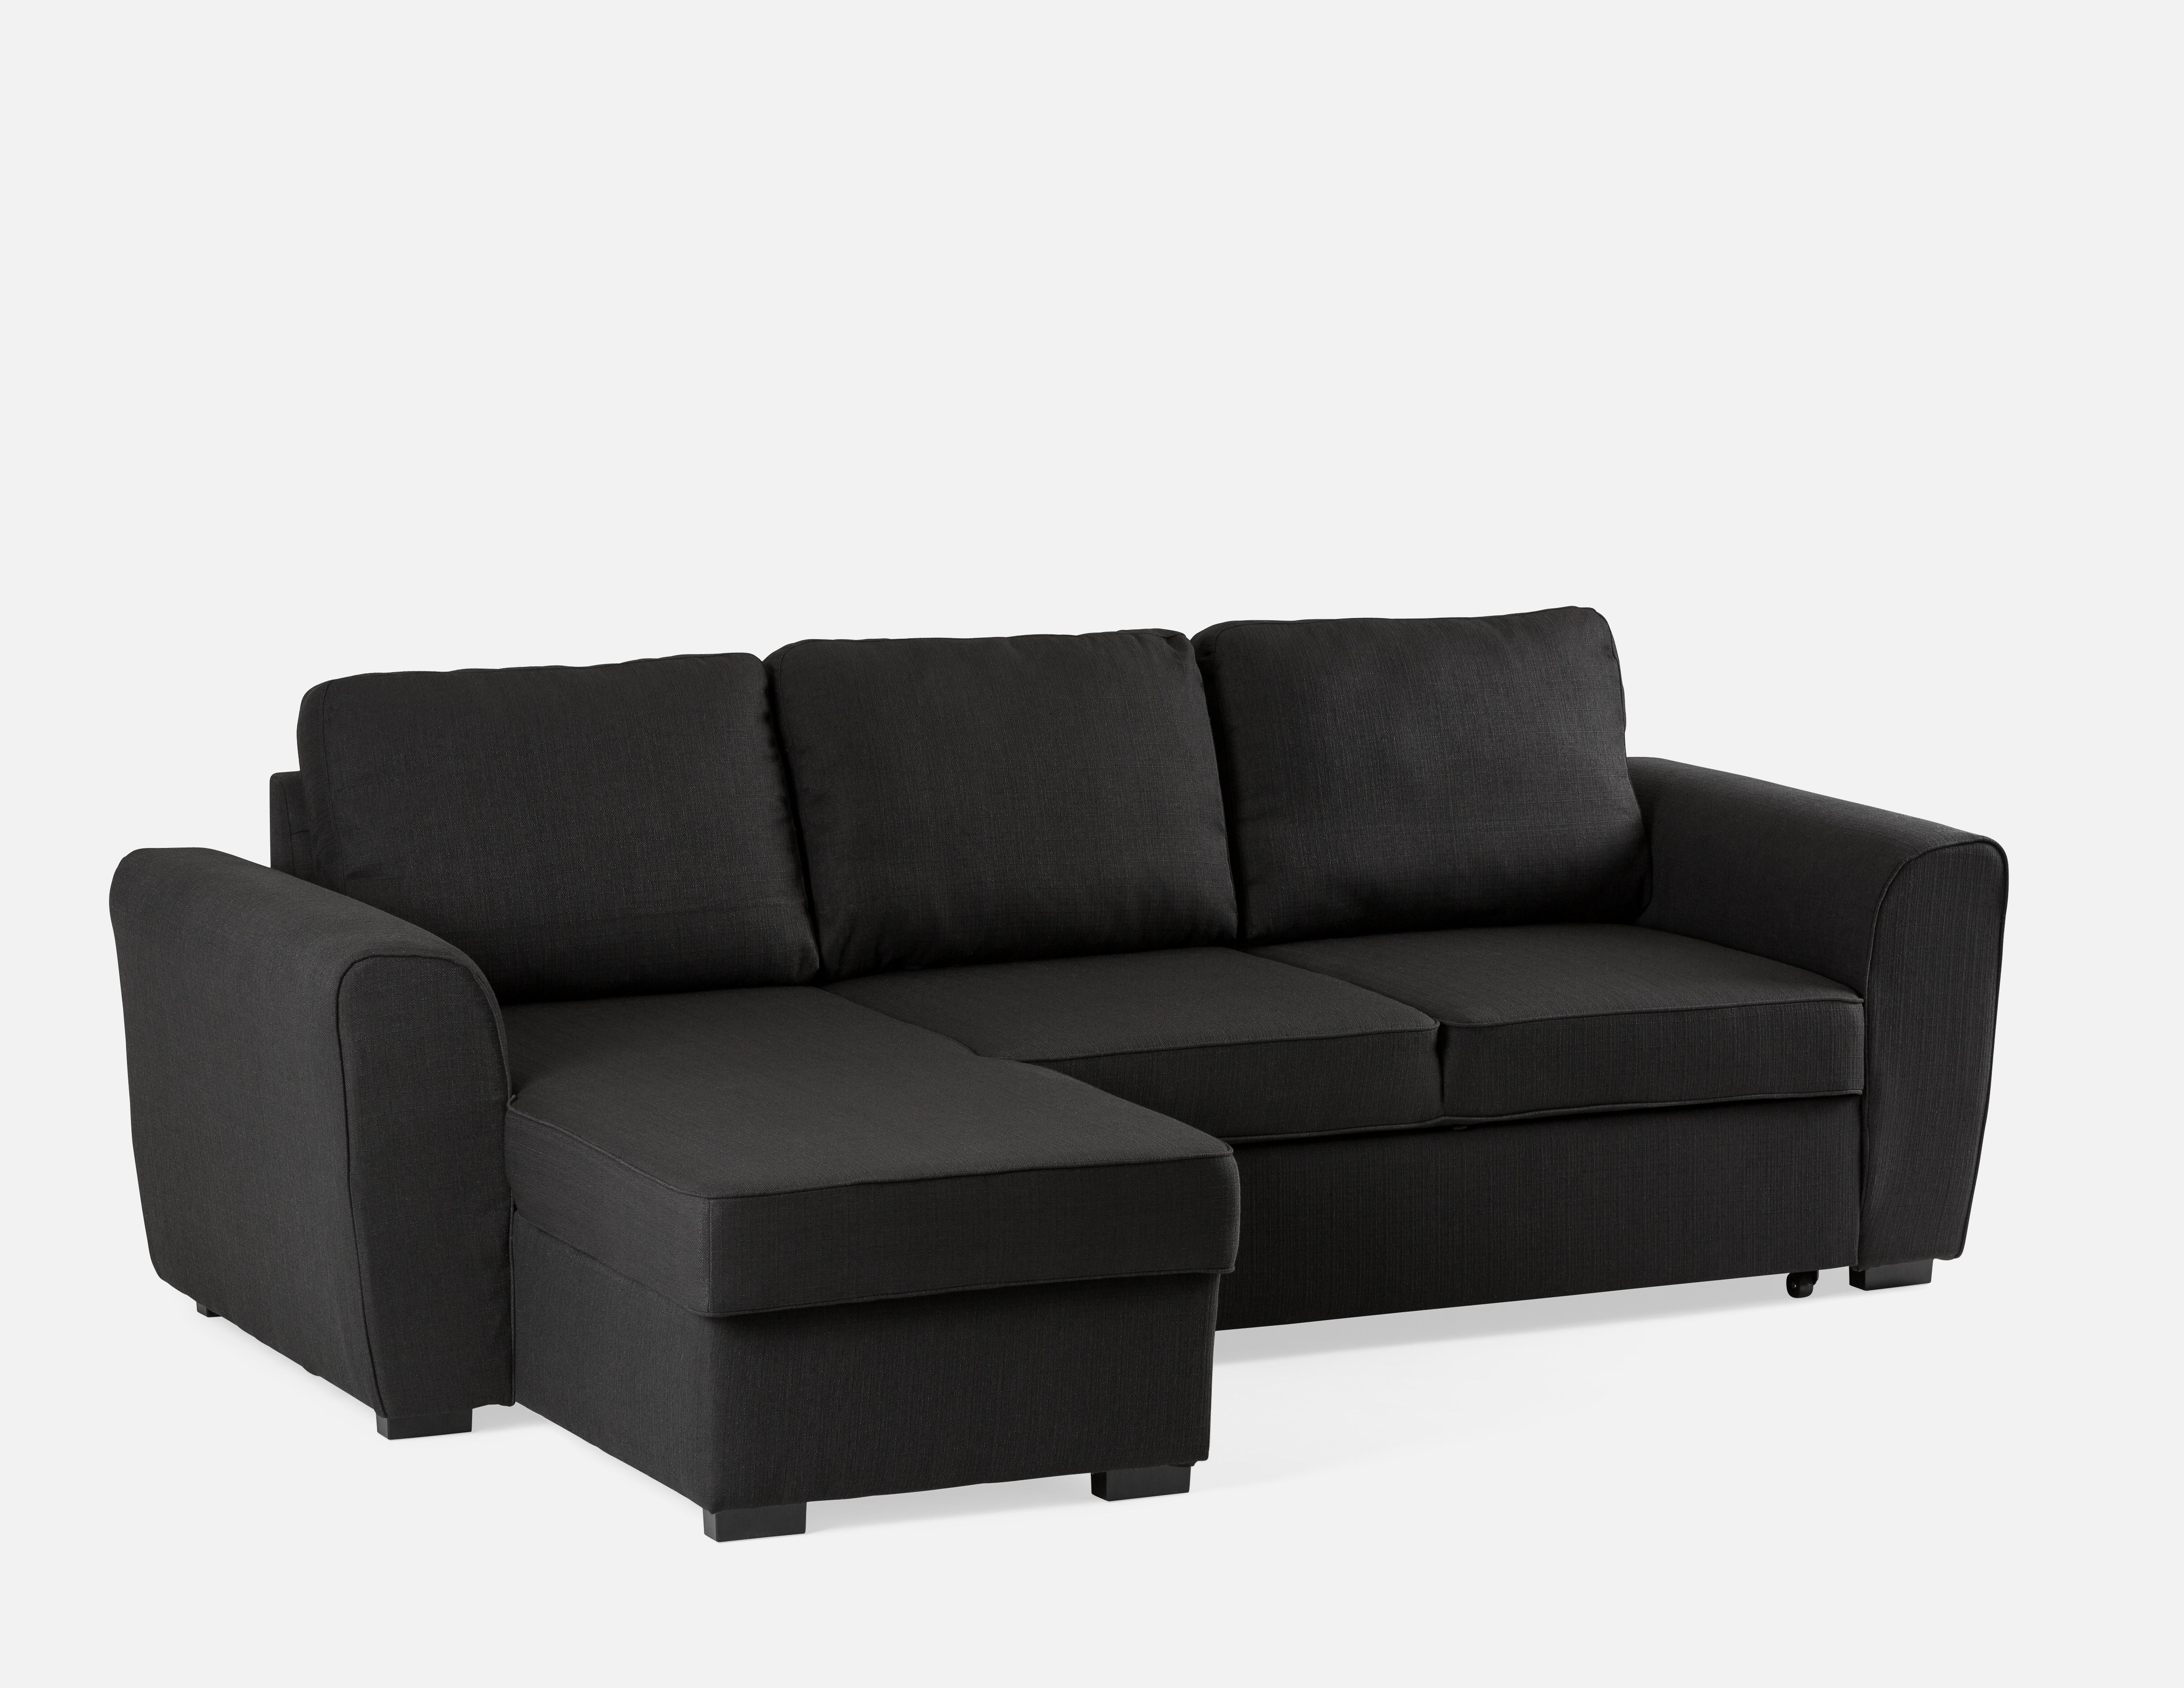 Black Interchangeable Sectional Sofa Bed With Storage Structube